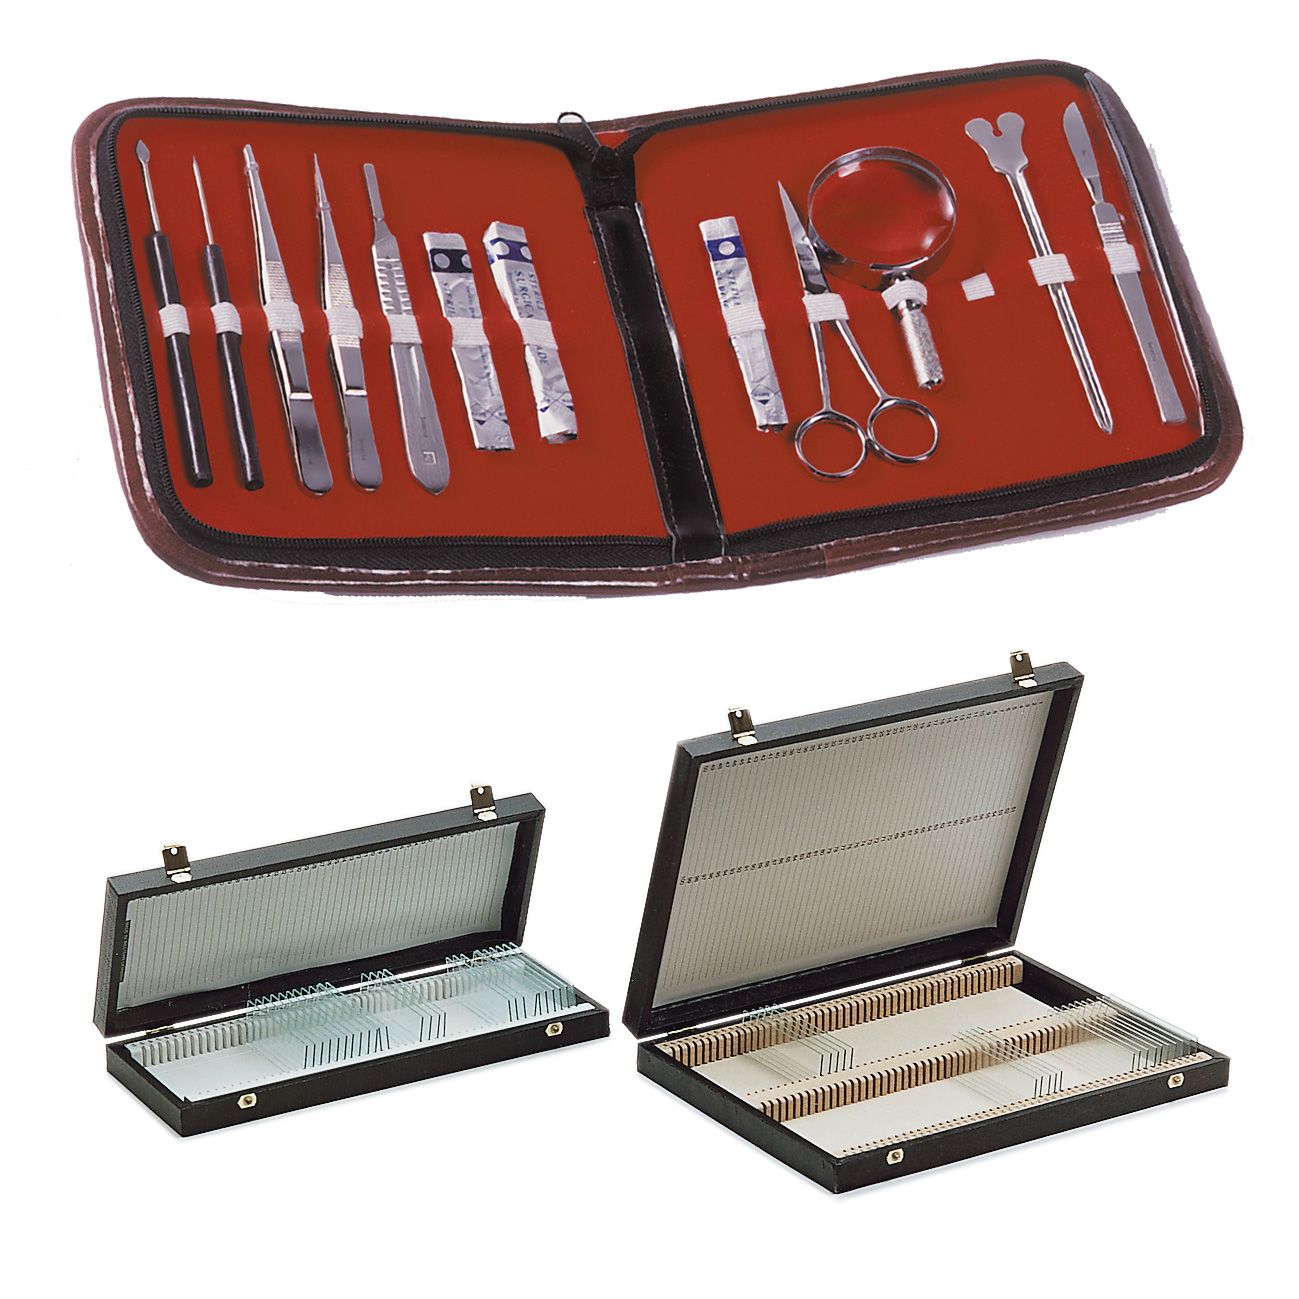 Instruments for dissection and slide boxes